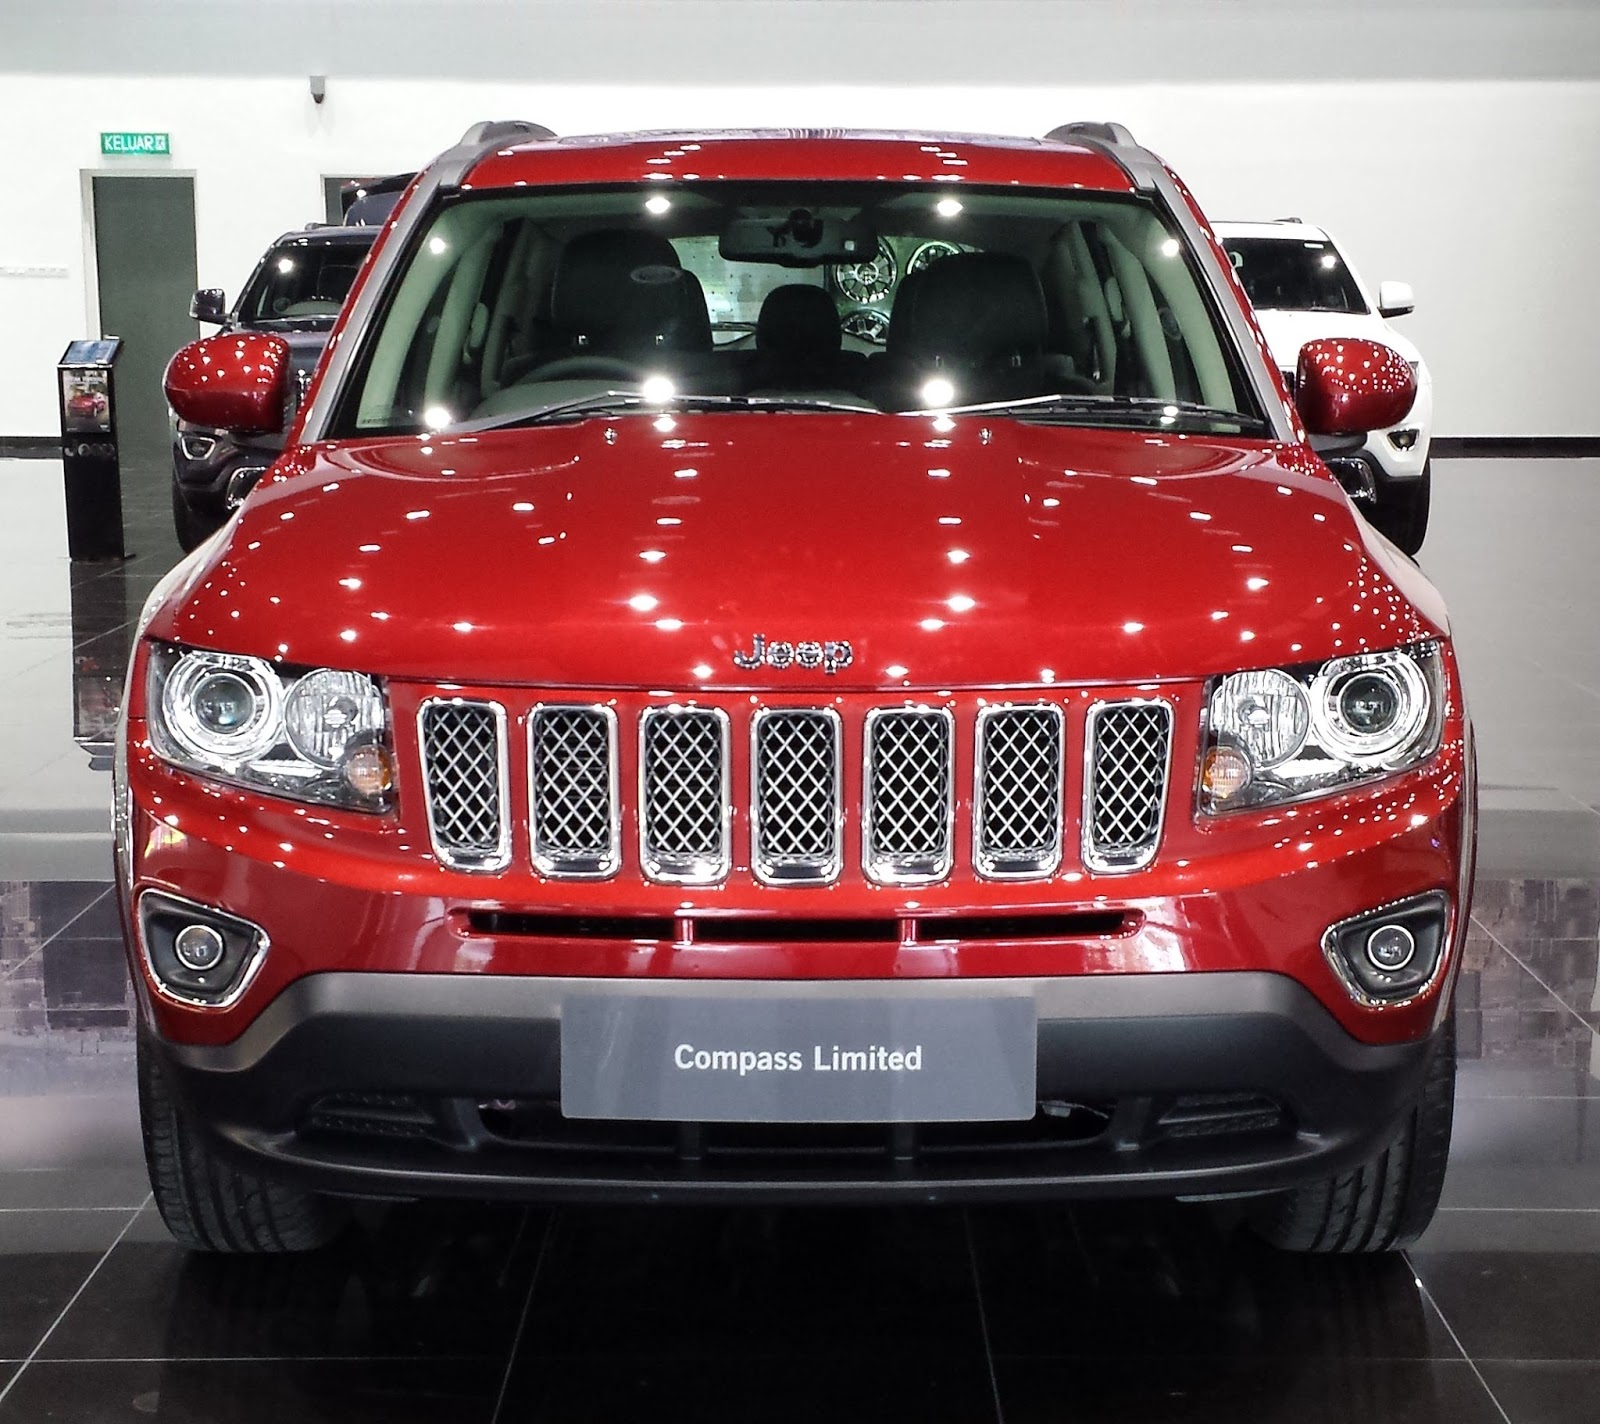 Jeep Compass Used Car: The Layman Auto: Jeep Compass Taking On The Car-based SUV